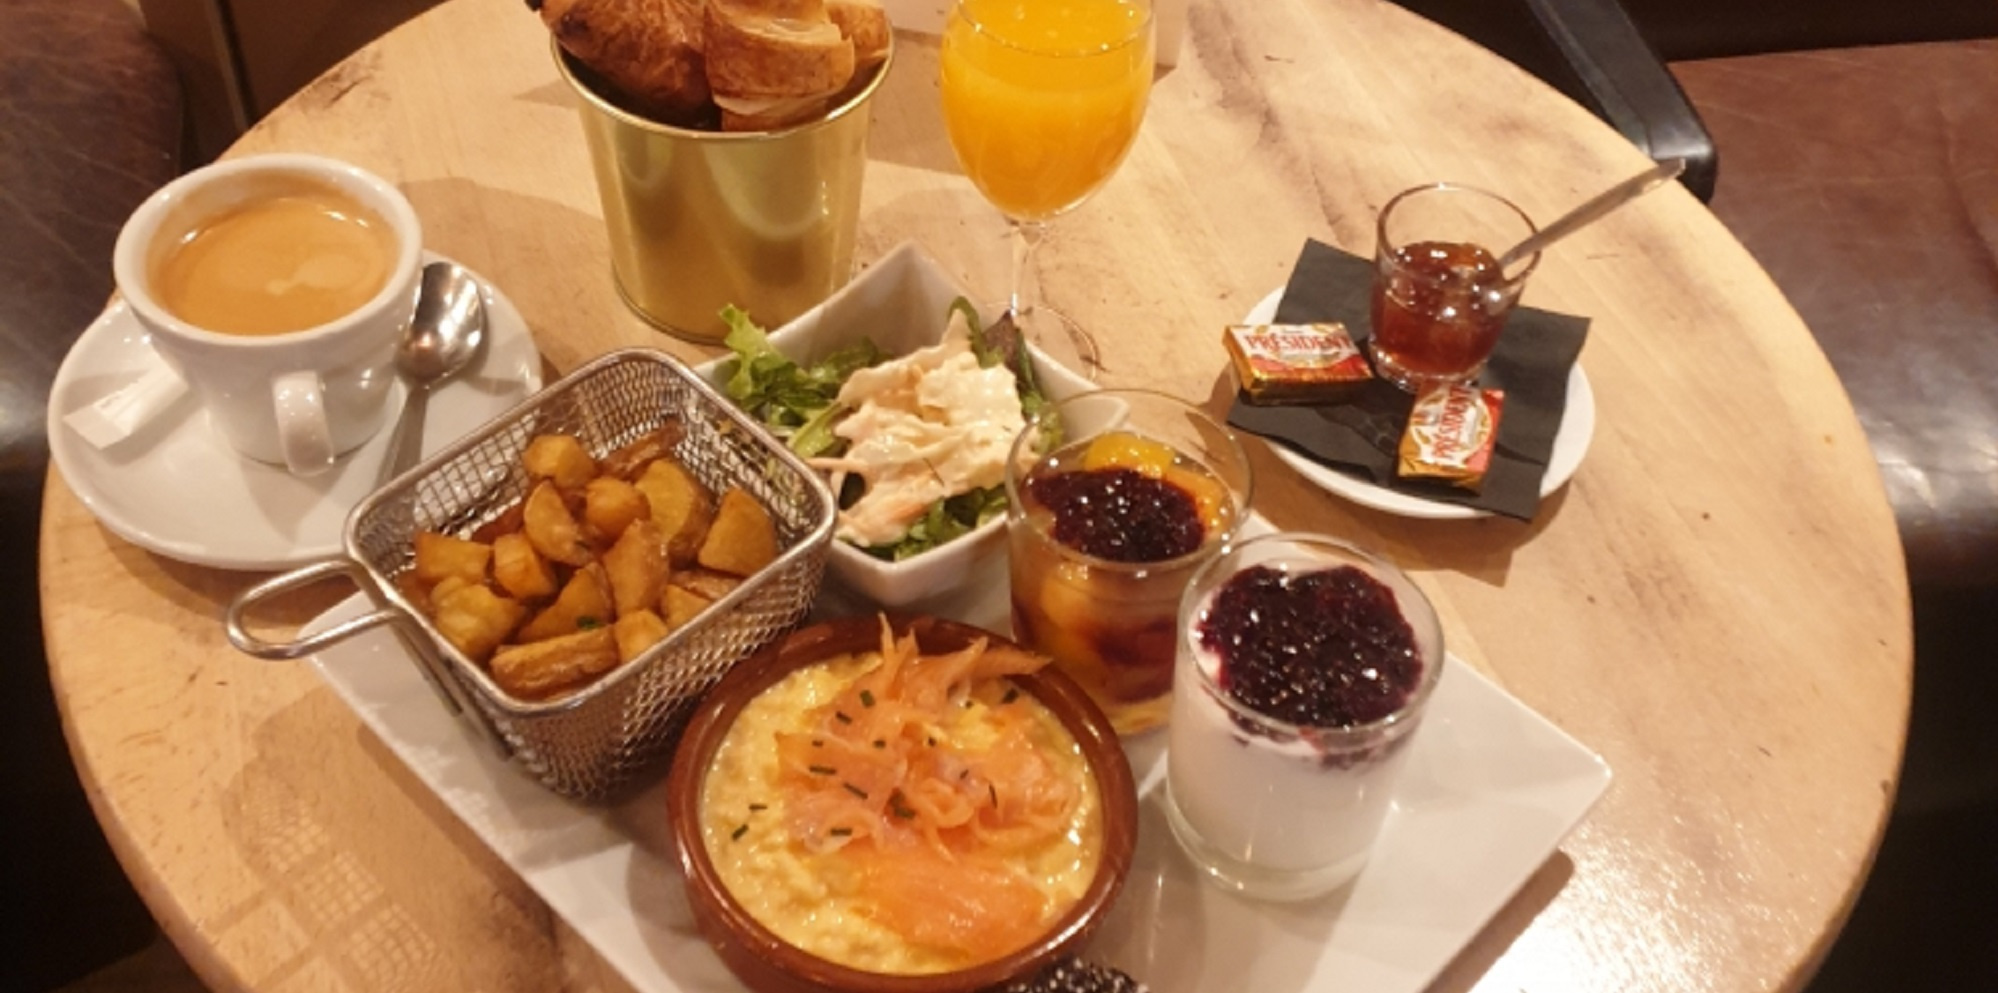 Brunch Café Livres (75004 Paris)